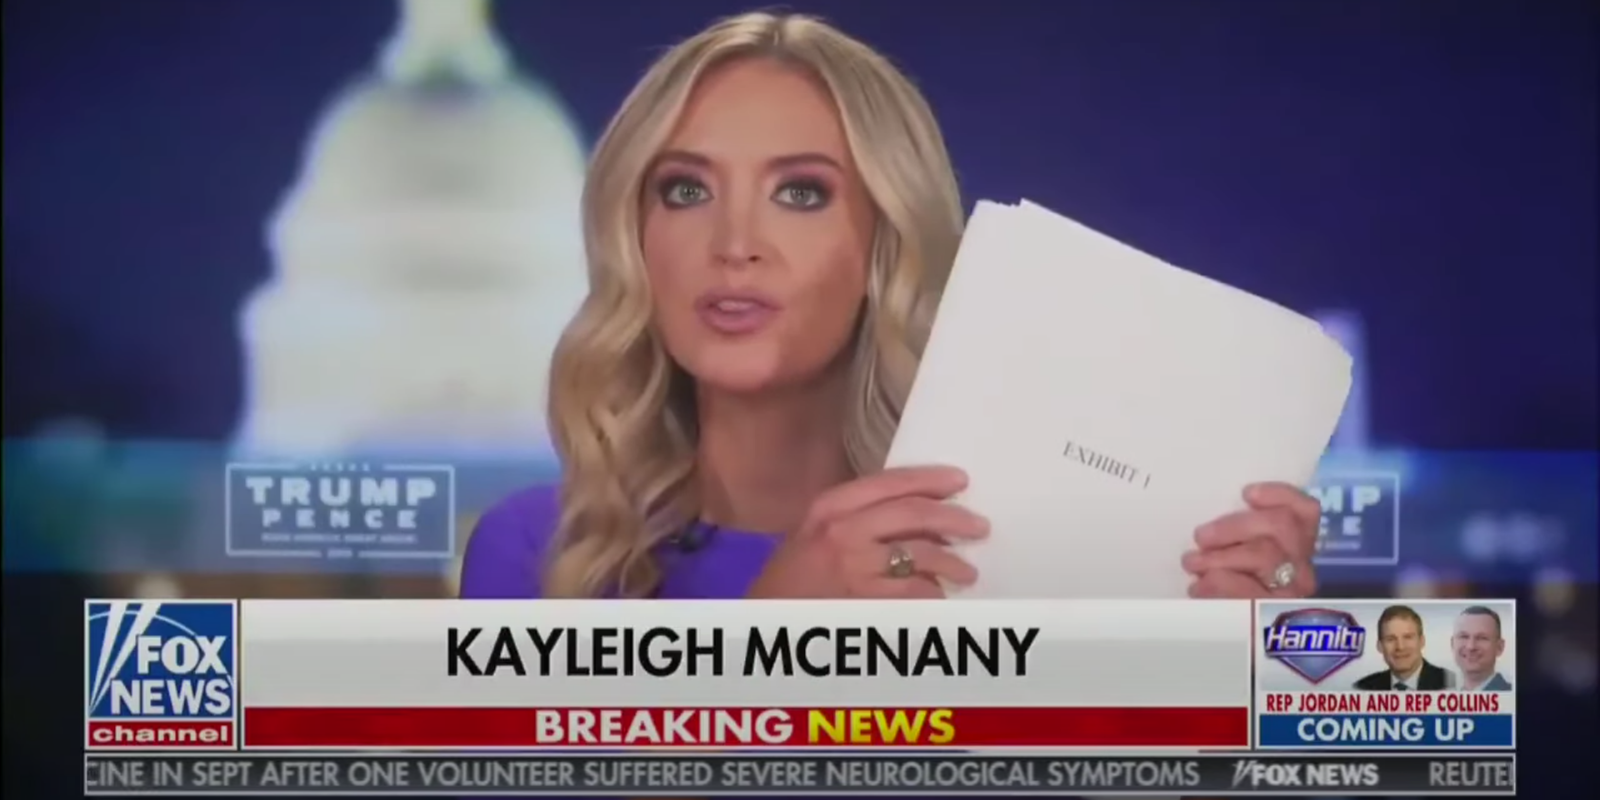 WATCH: Kayleigh McEnany and RNC's Ronna McDaniel reveal hundreds of affidavits alleging voter fraud